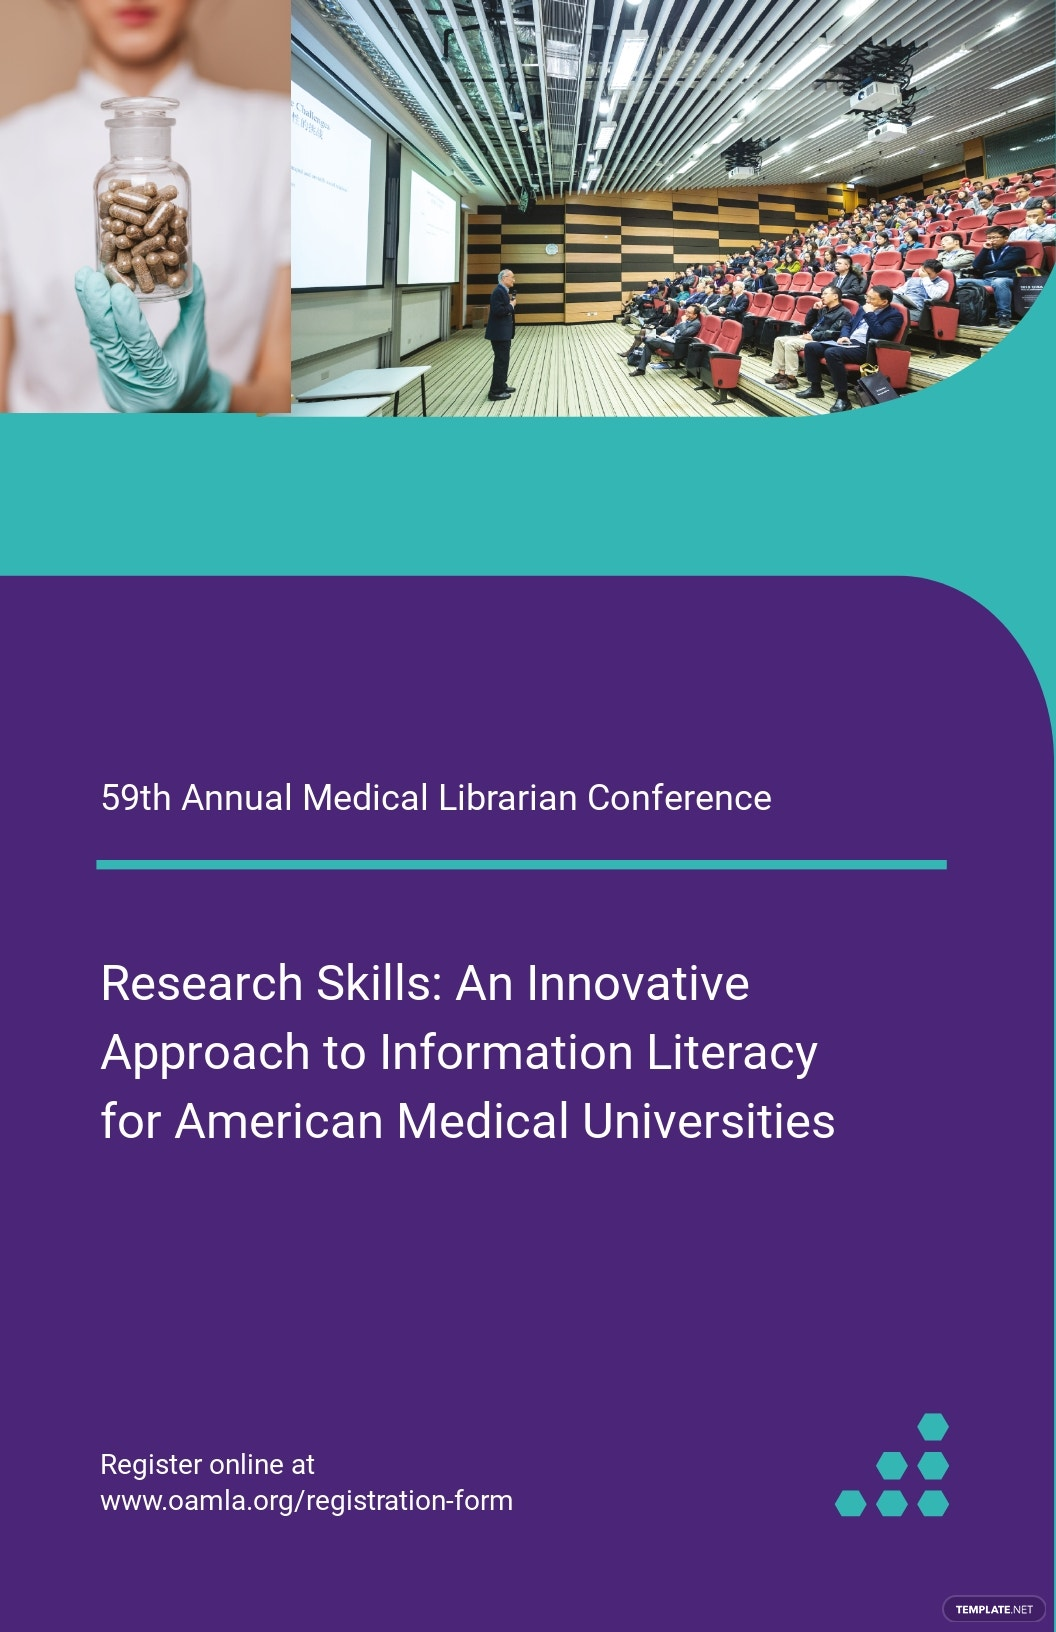 University Conference Poster Template